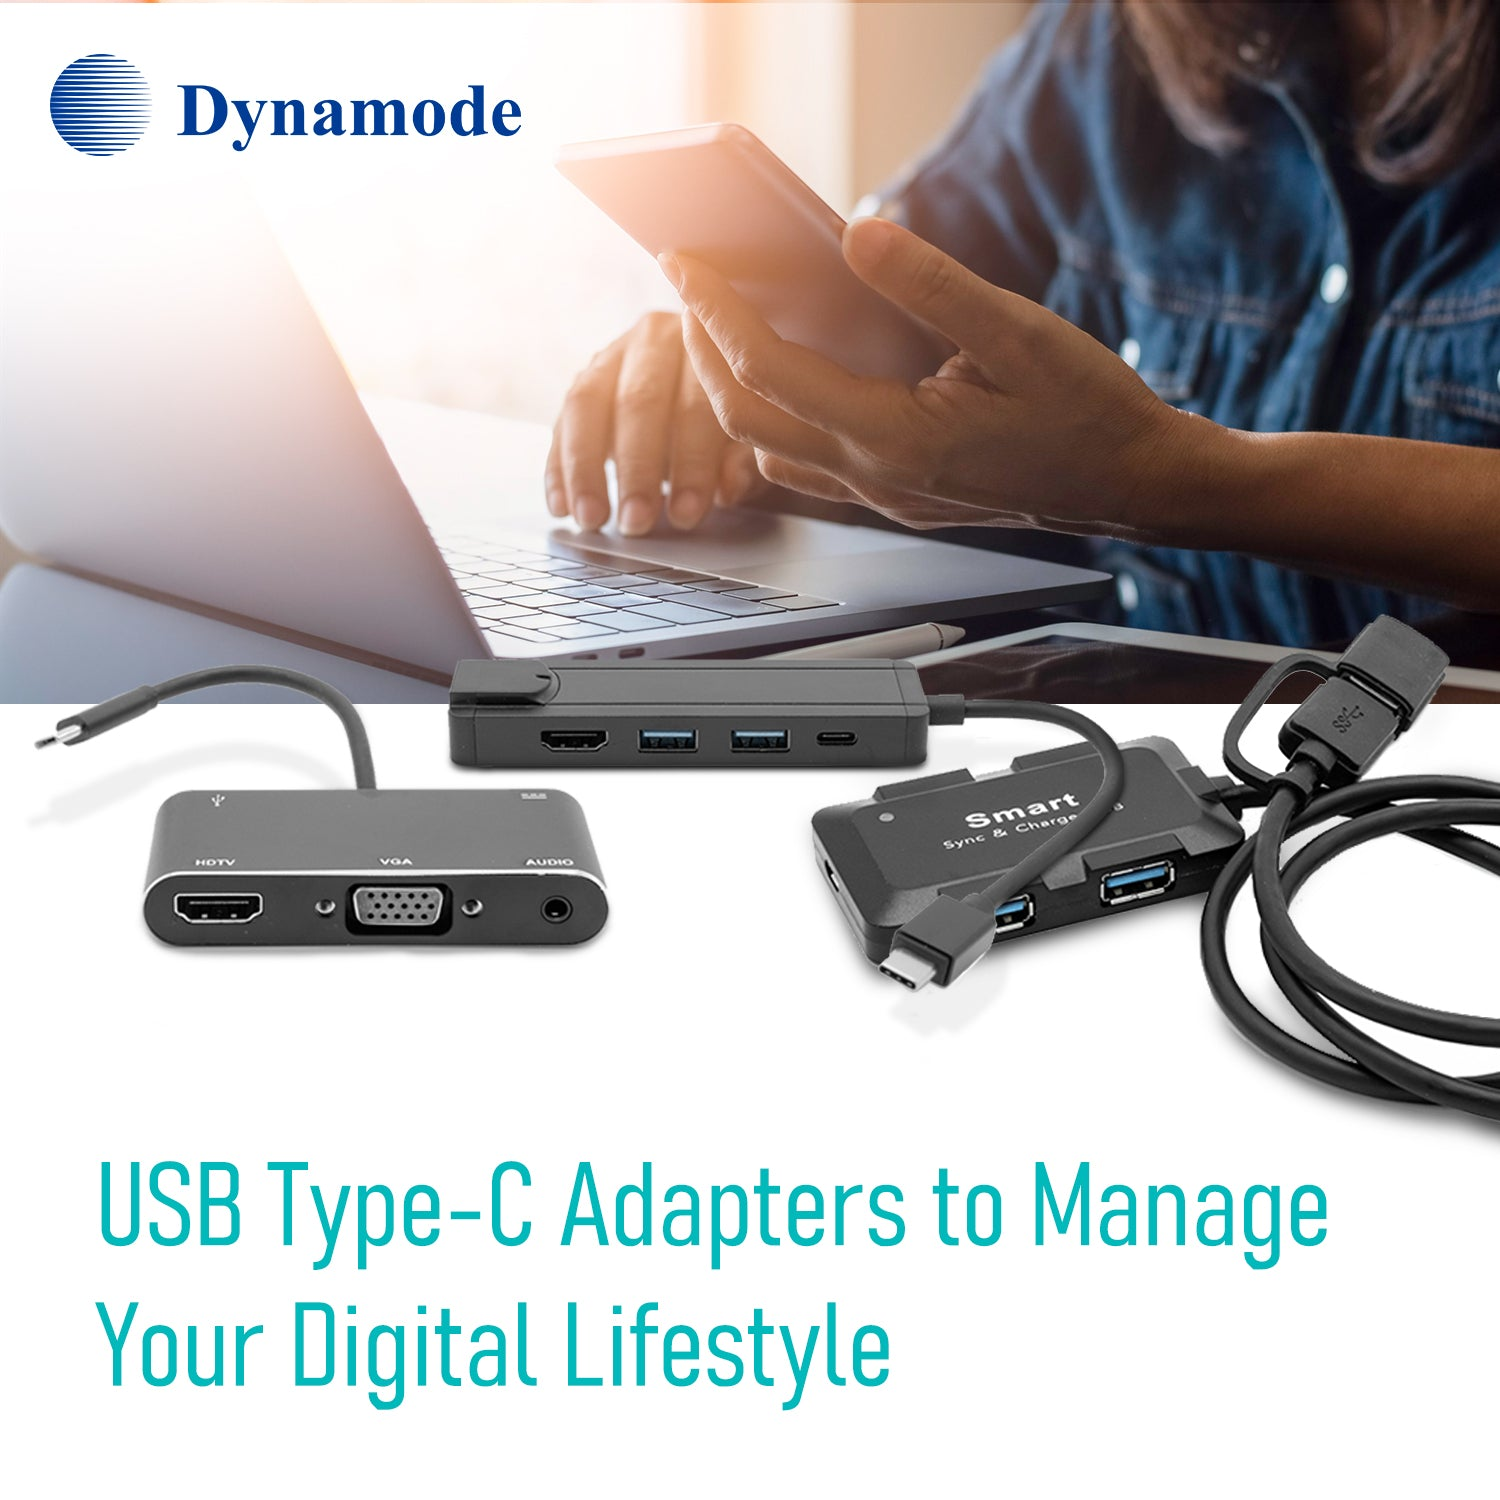 USB Type-C to USB Sync and Charge Cable 1 metre length (C-USB-T-C-BLK)